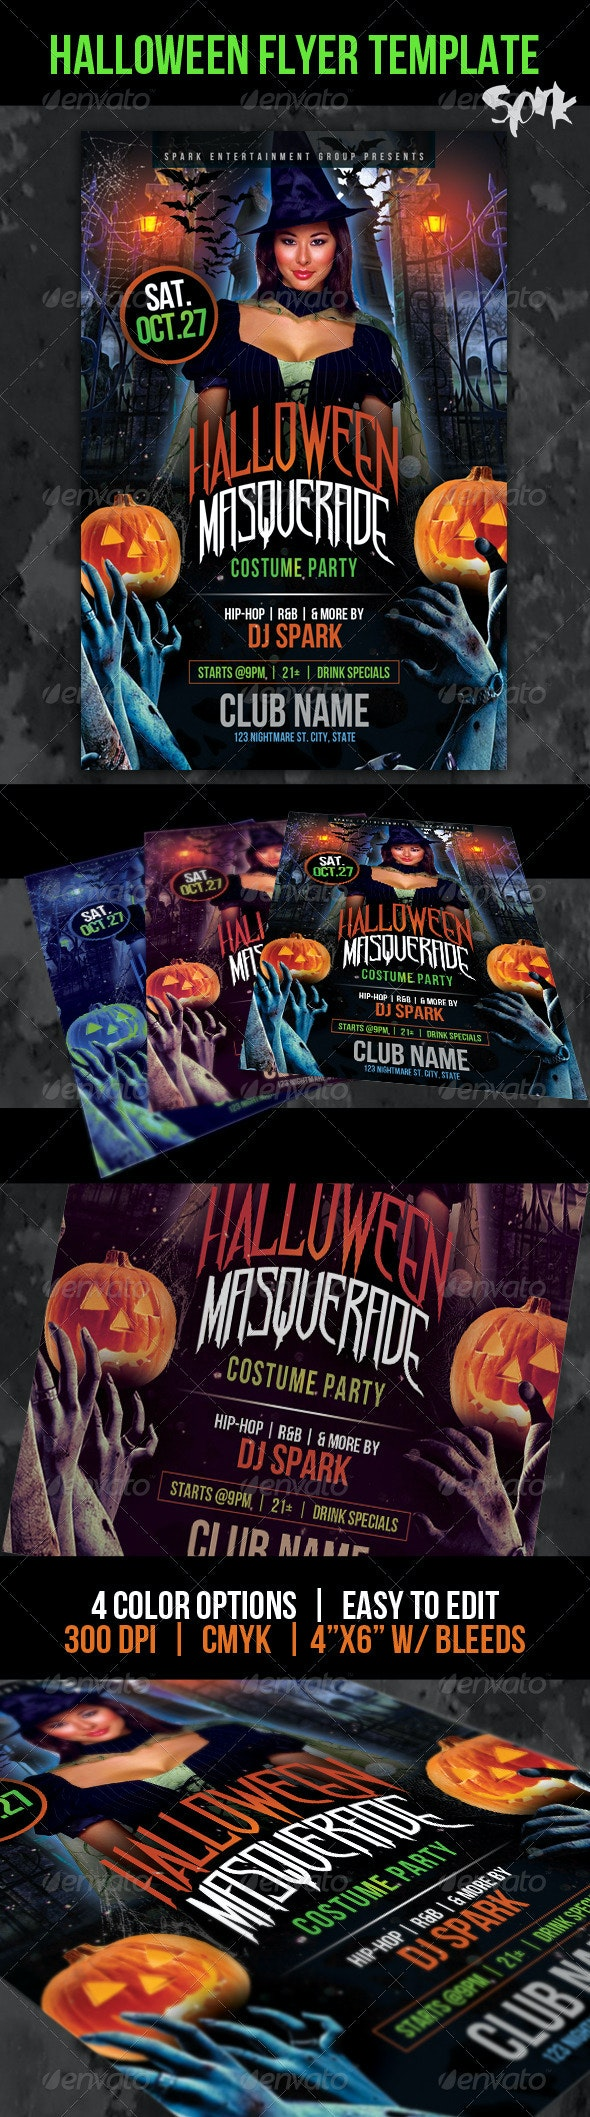 Halloween Masquerade Costume Party Flyer Template - Clubs & Parties Events